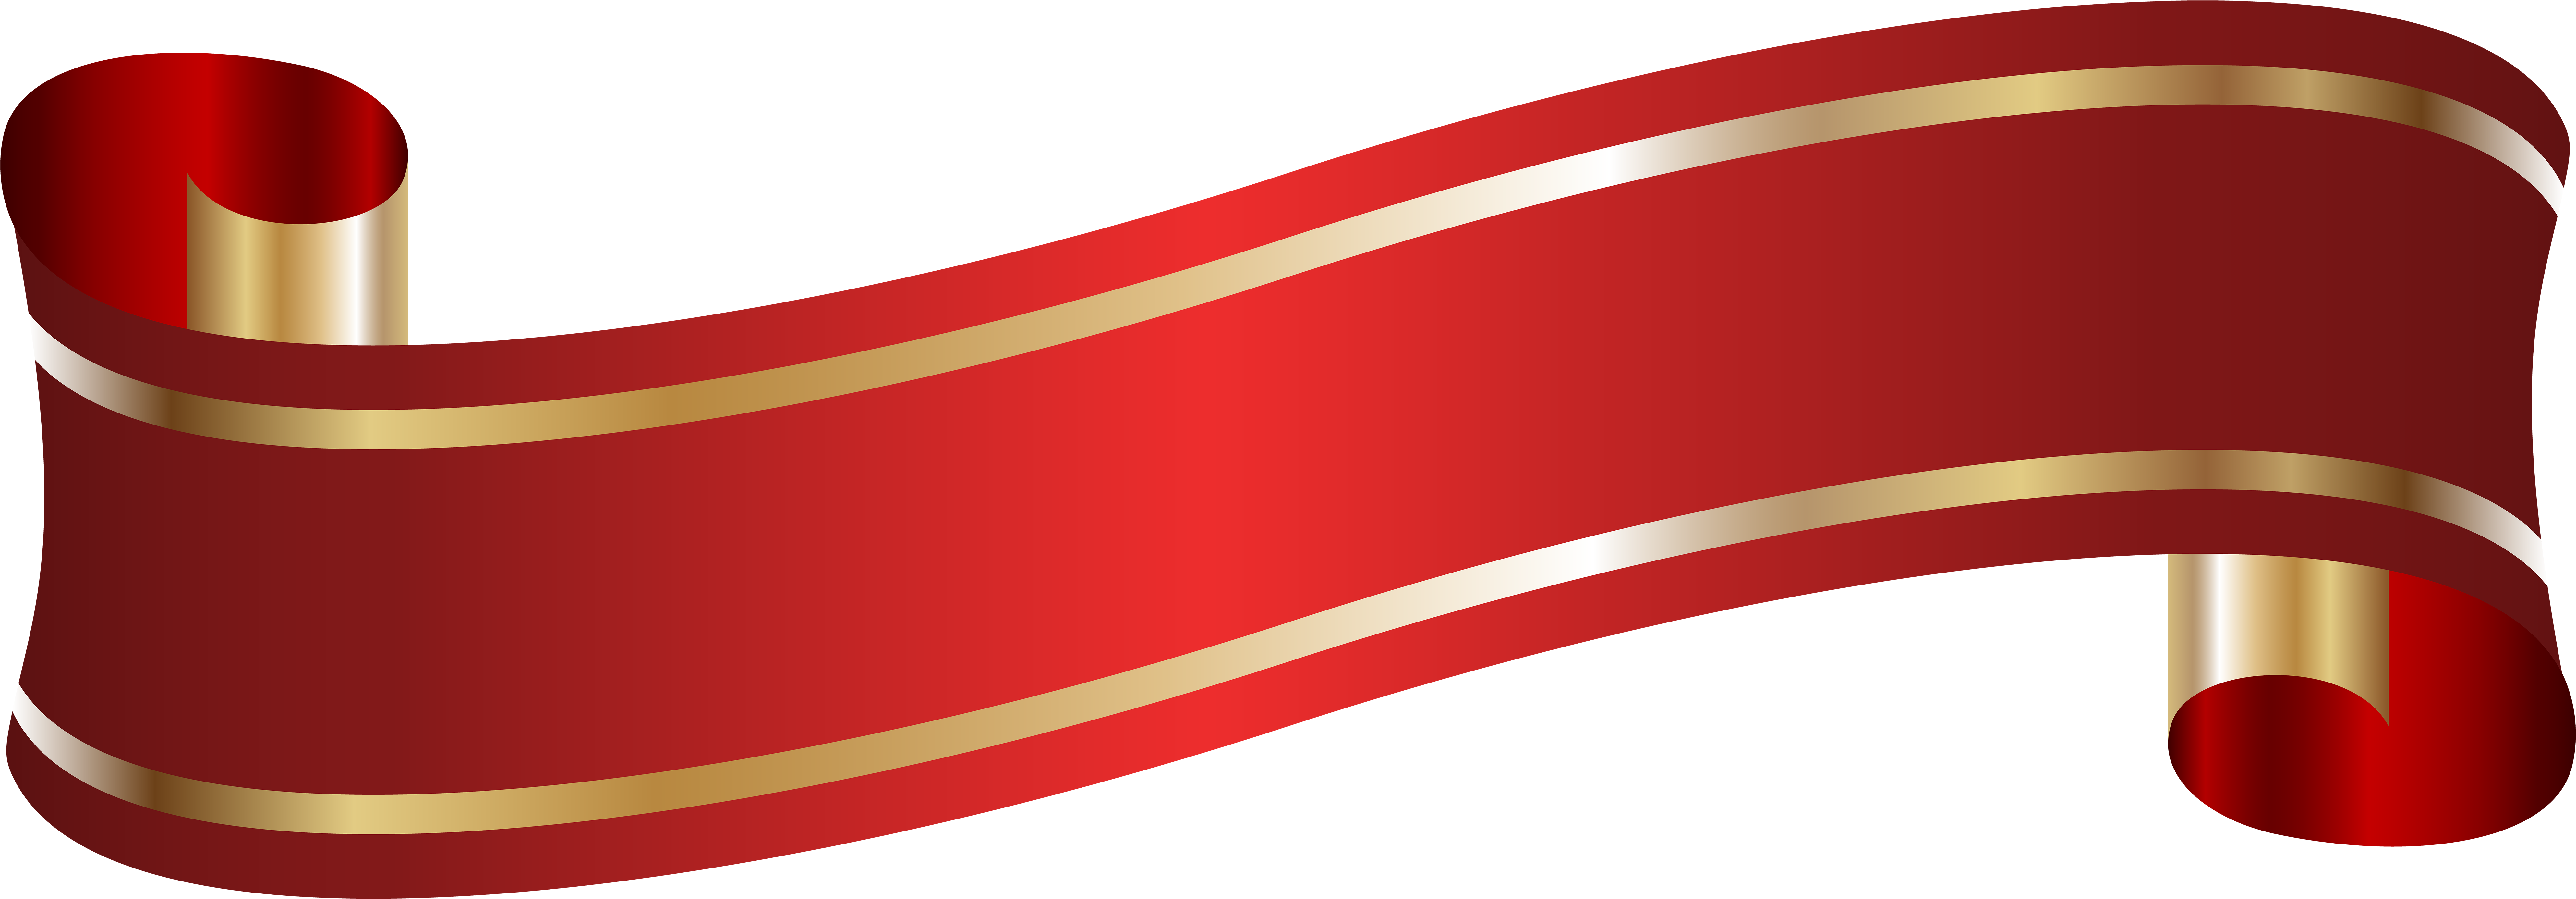 Download Red Ribbon Banner Png For Kids.